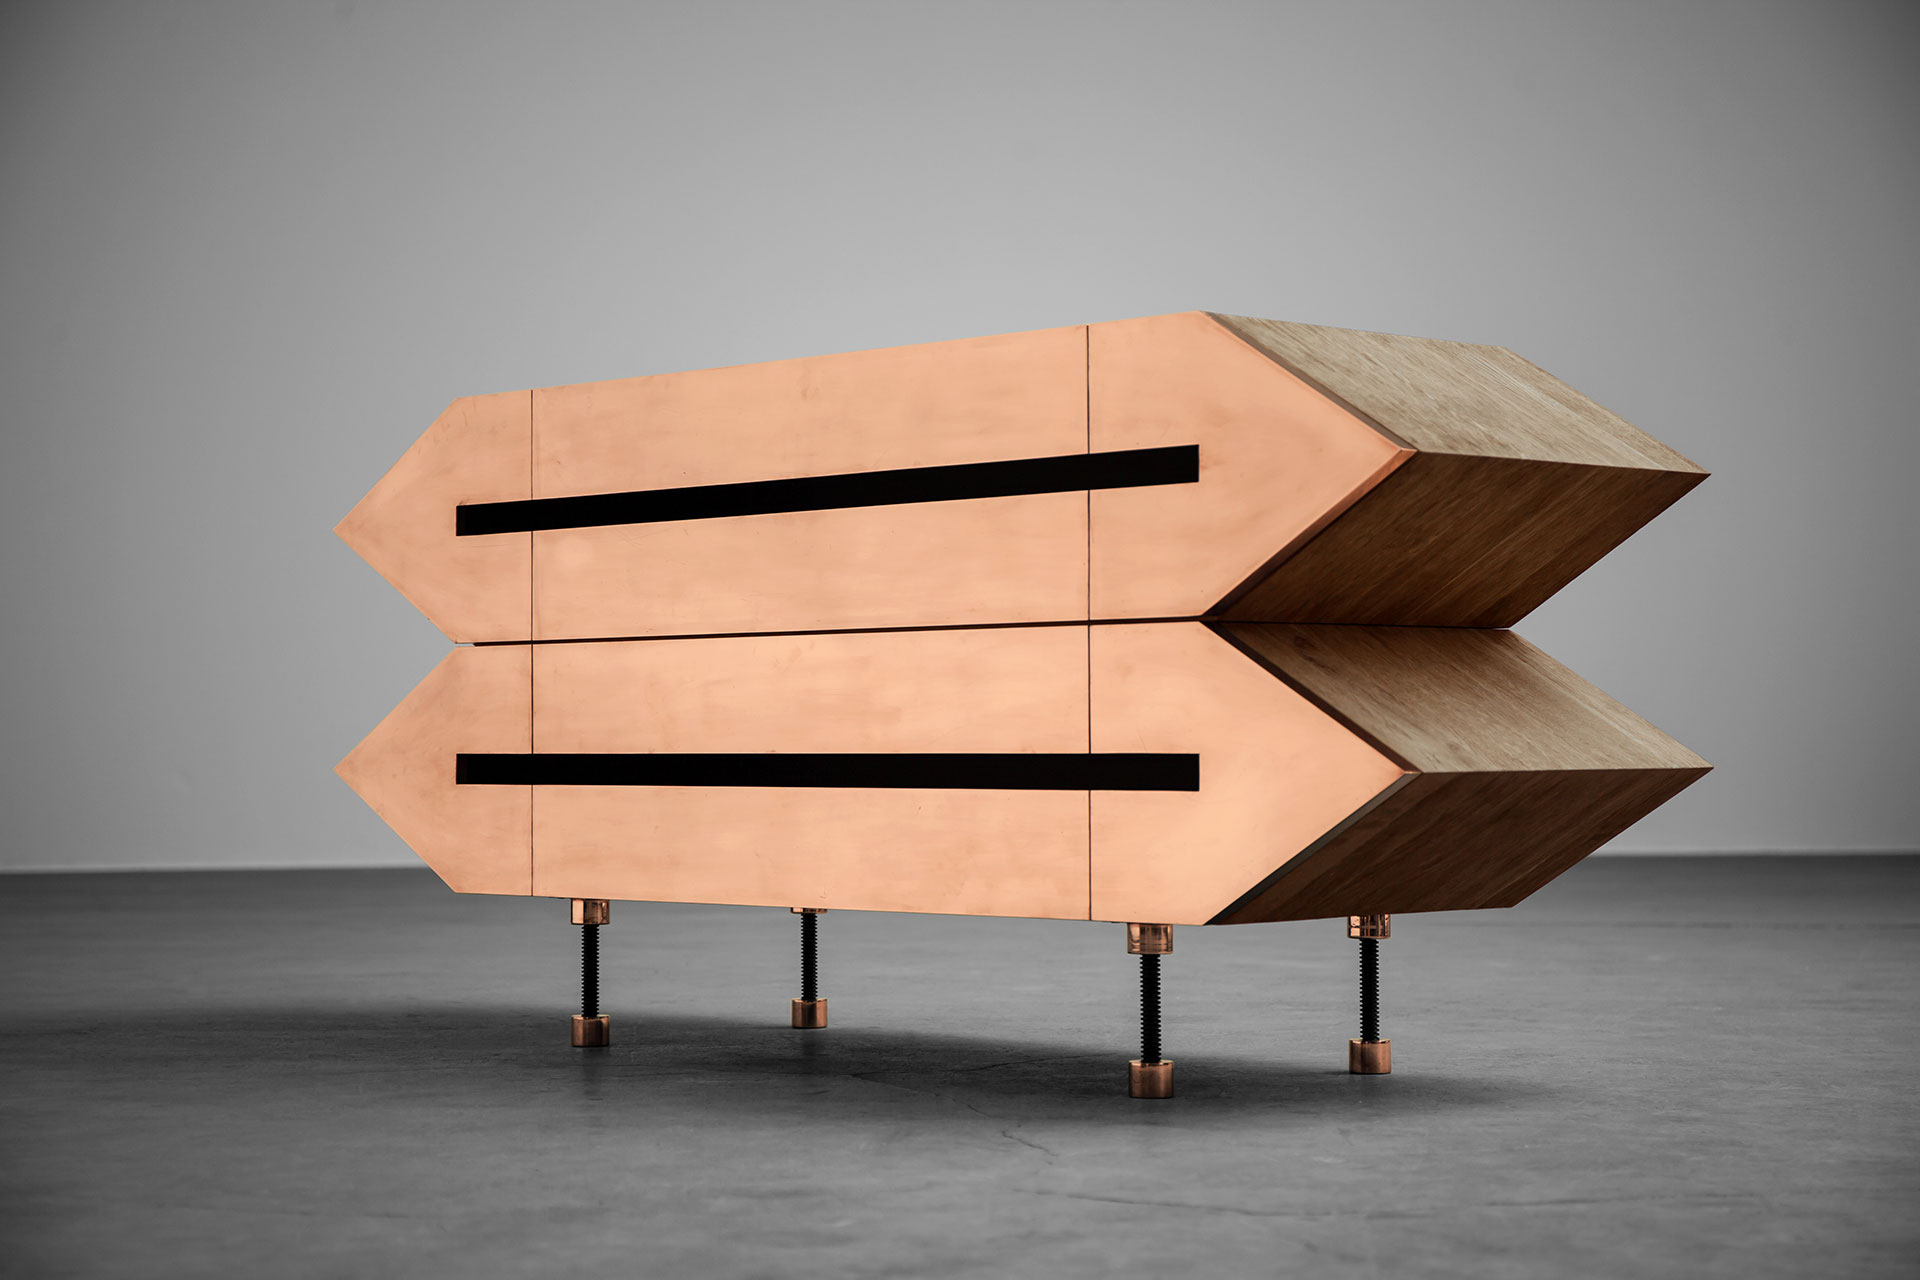 Brutalist design sideboard inspired by futuristic architecture